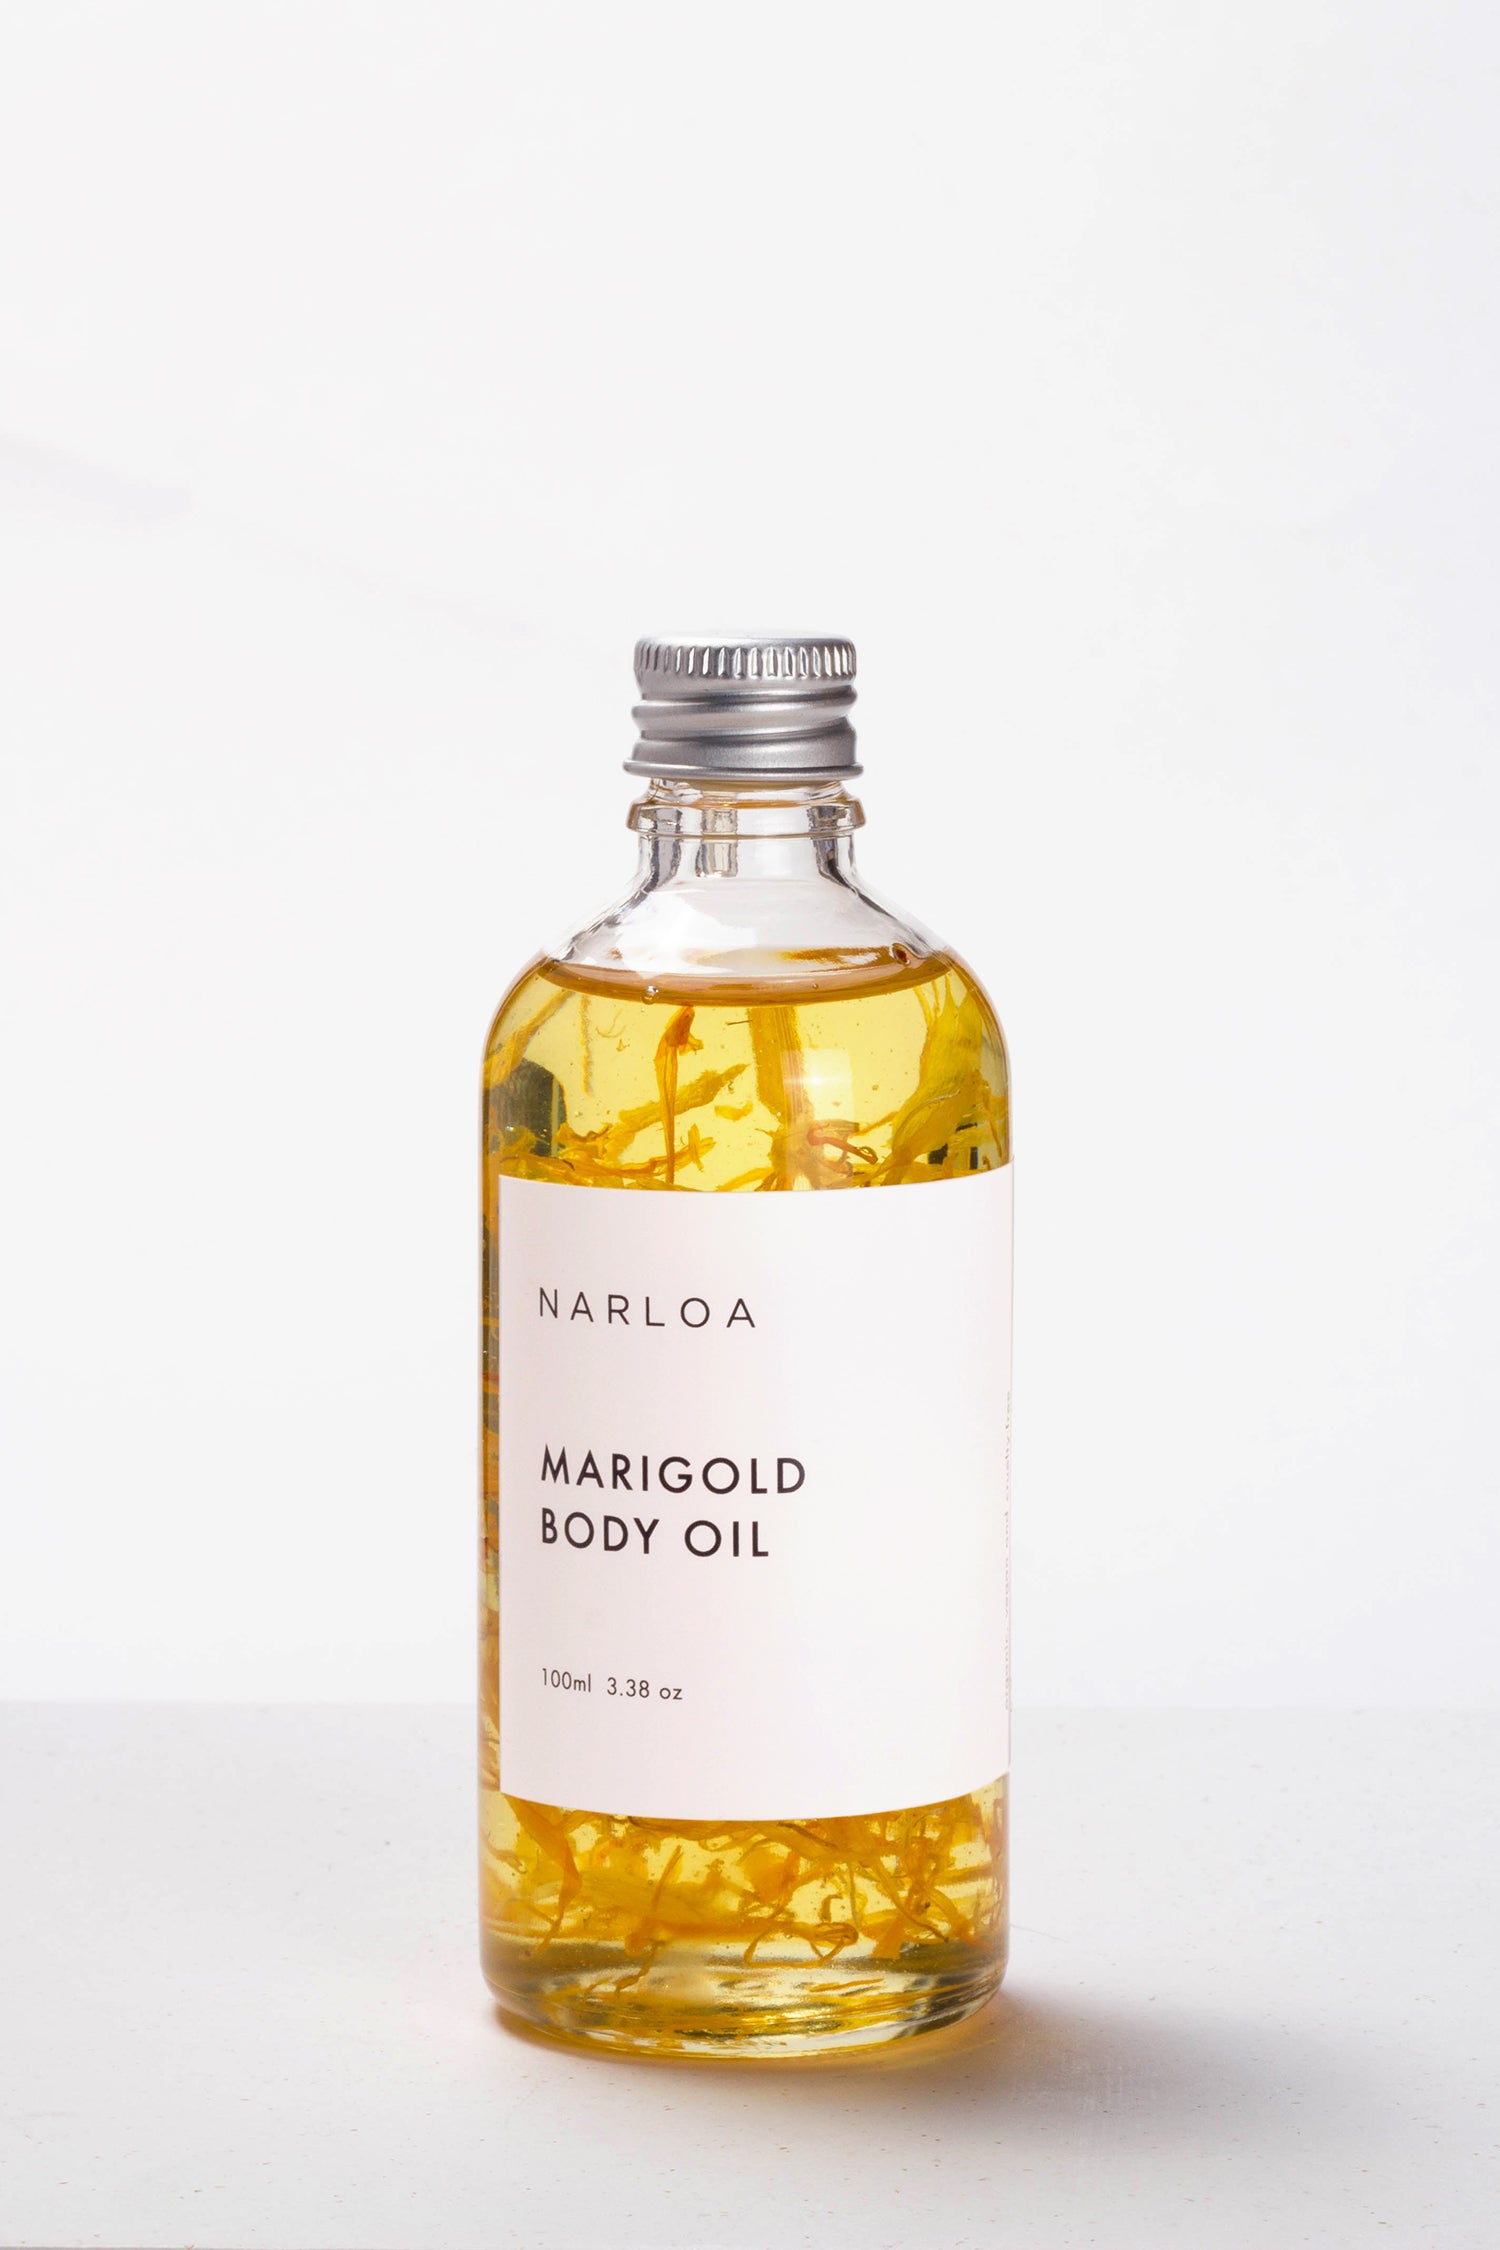 MARIGOLD BODY OIL 100ml